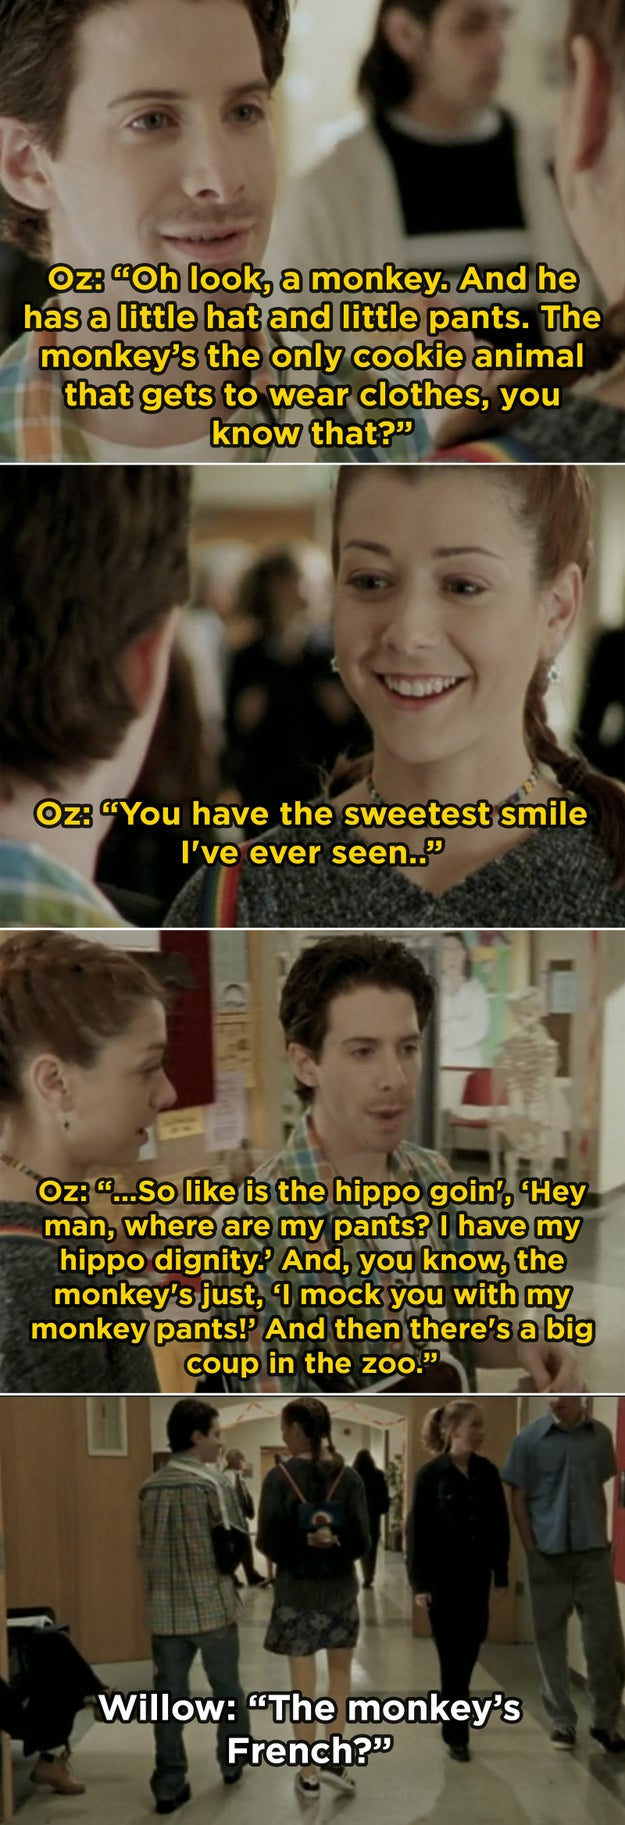 In Buffy the Vampire Slayer, Seth Green and Alyson Hannigan improvised the memorable scene in which Oz and Willow joke about animal crackers.